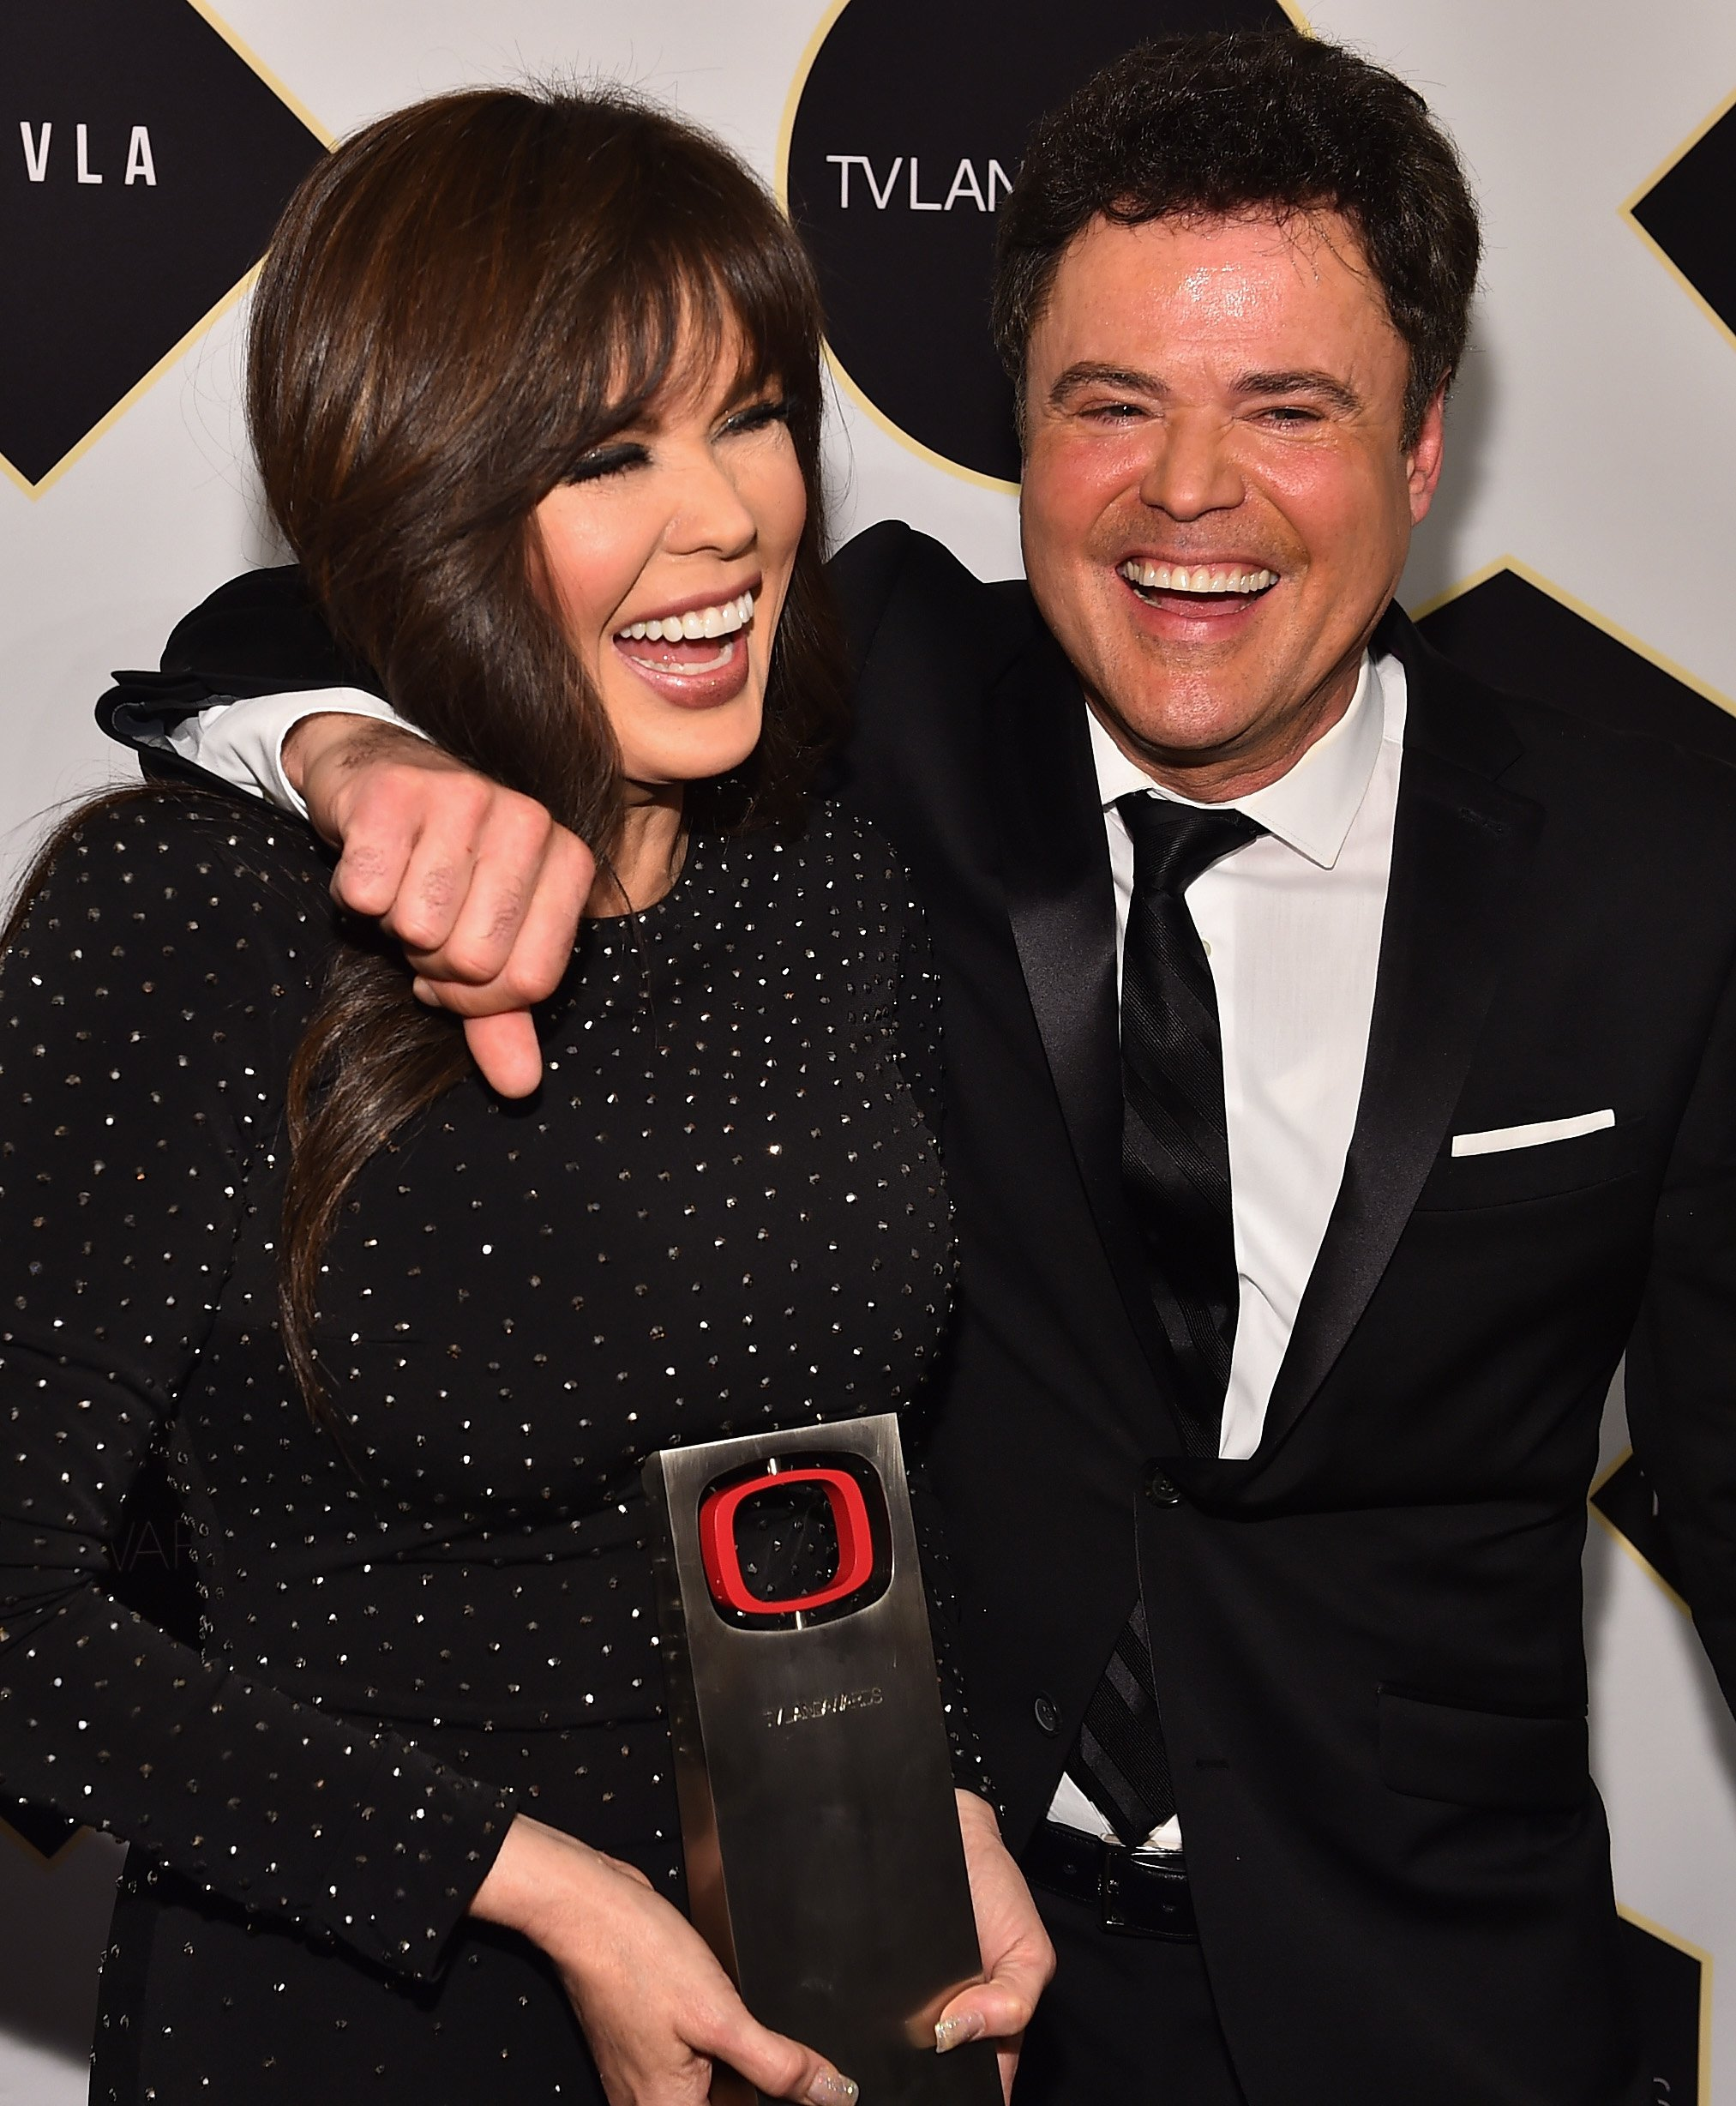 Marie and Donny Osmond attend the 2015 TV Land Awards in Beverly Hills, California on April 11, 2015 | Photo: Getty Images